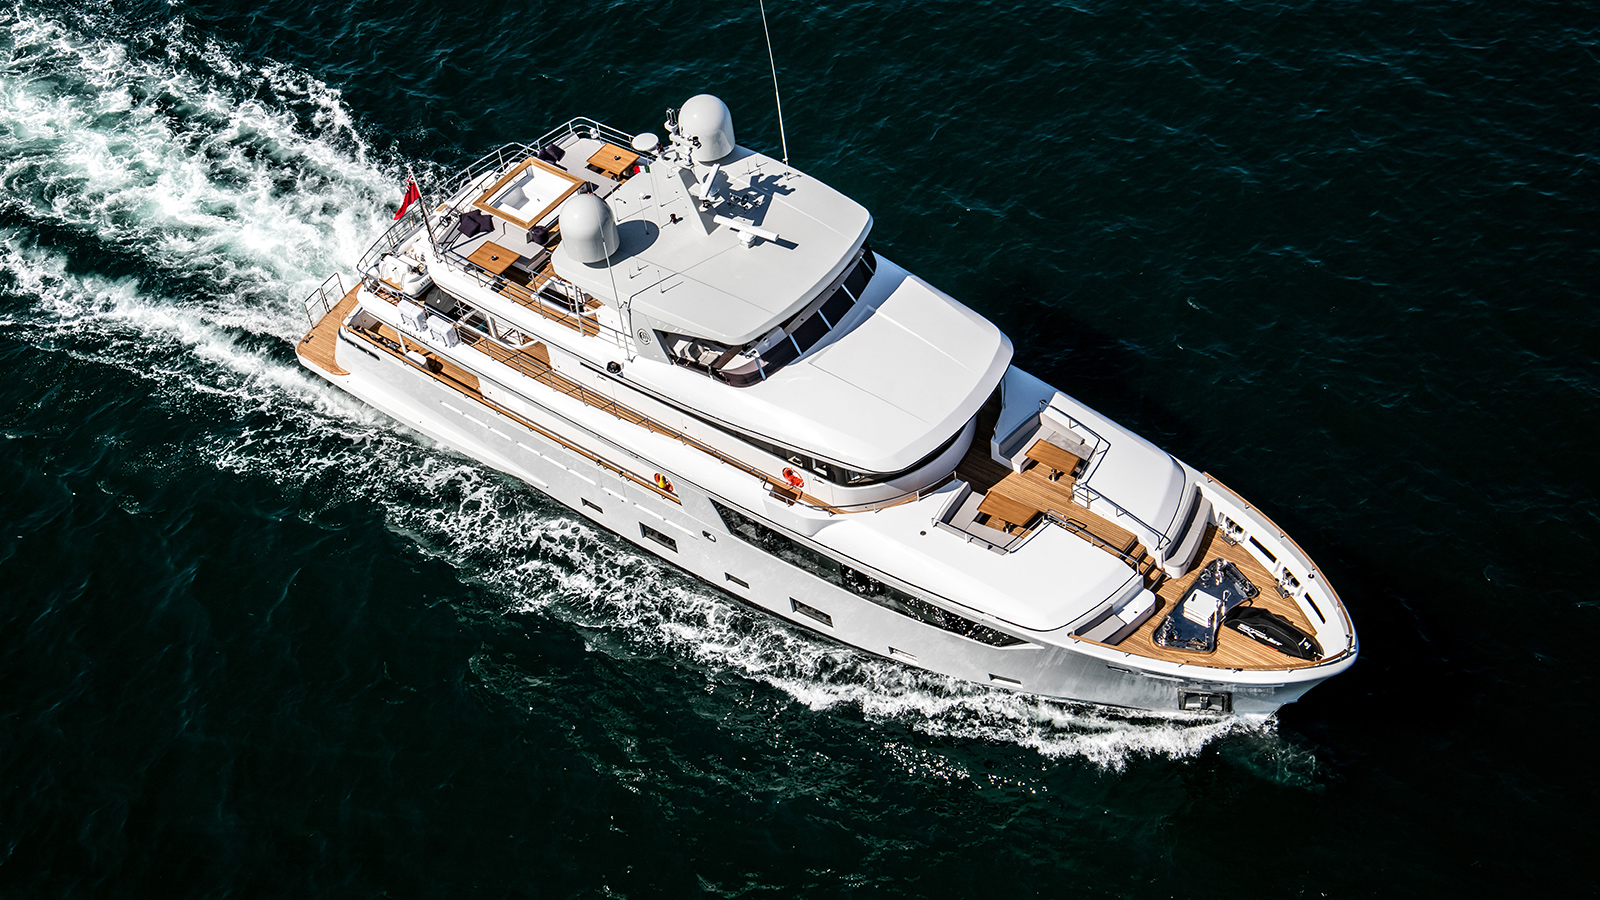 aerial-view-of-the-nauta-air-108-yacht-narvalo-from-cantiere-delle-marche